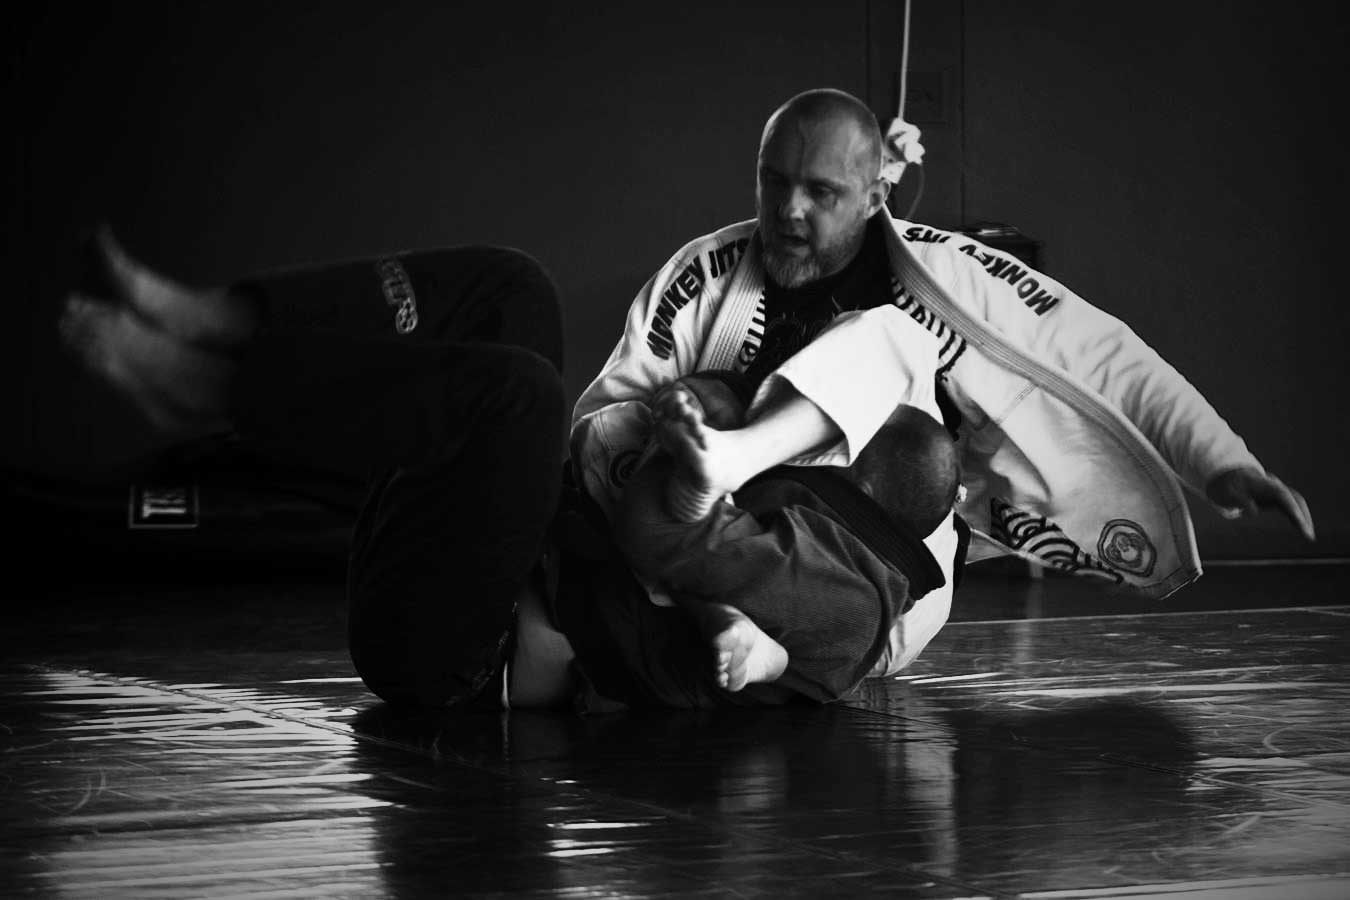 The Jiu-Jitsu of Creativity and Innovation